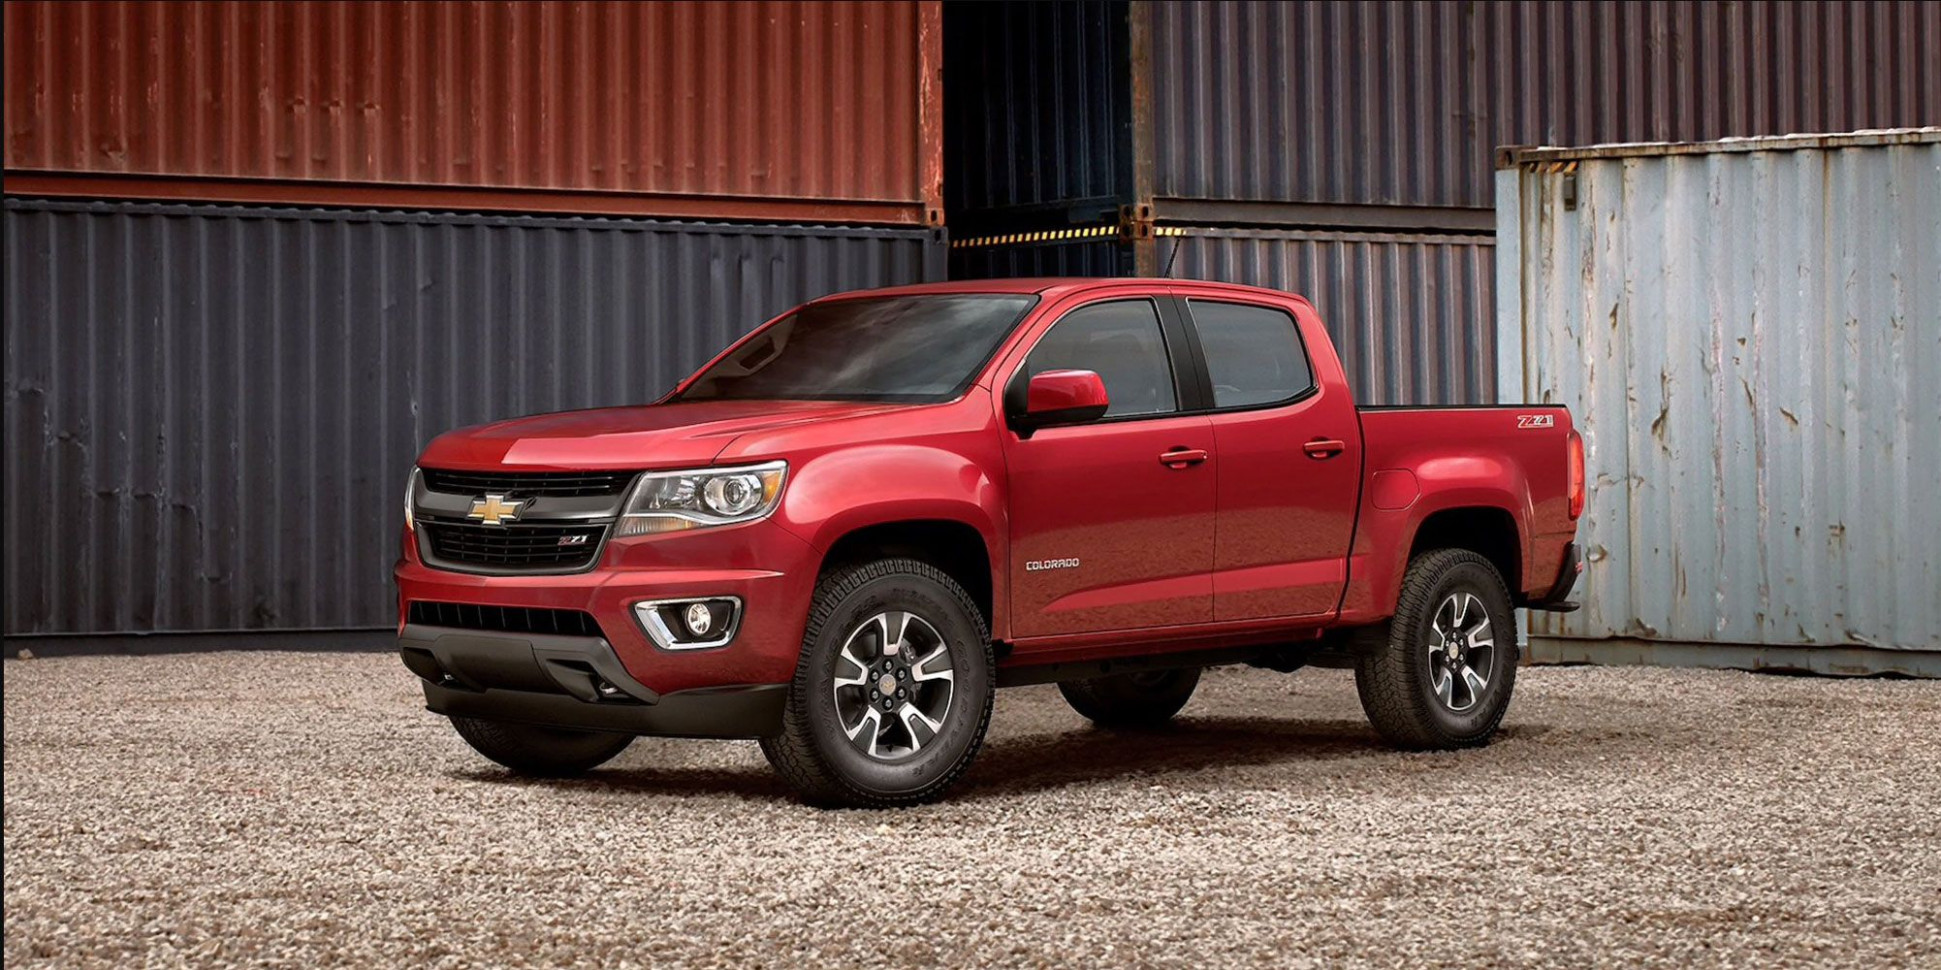 6 Chevrolet Colorado Review, Pricing, and Specs - chevrolet colorado 2020